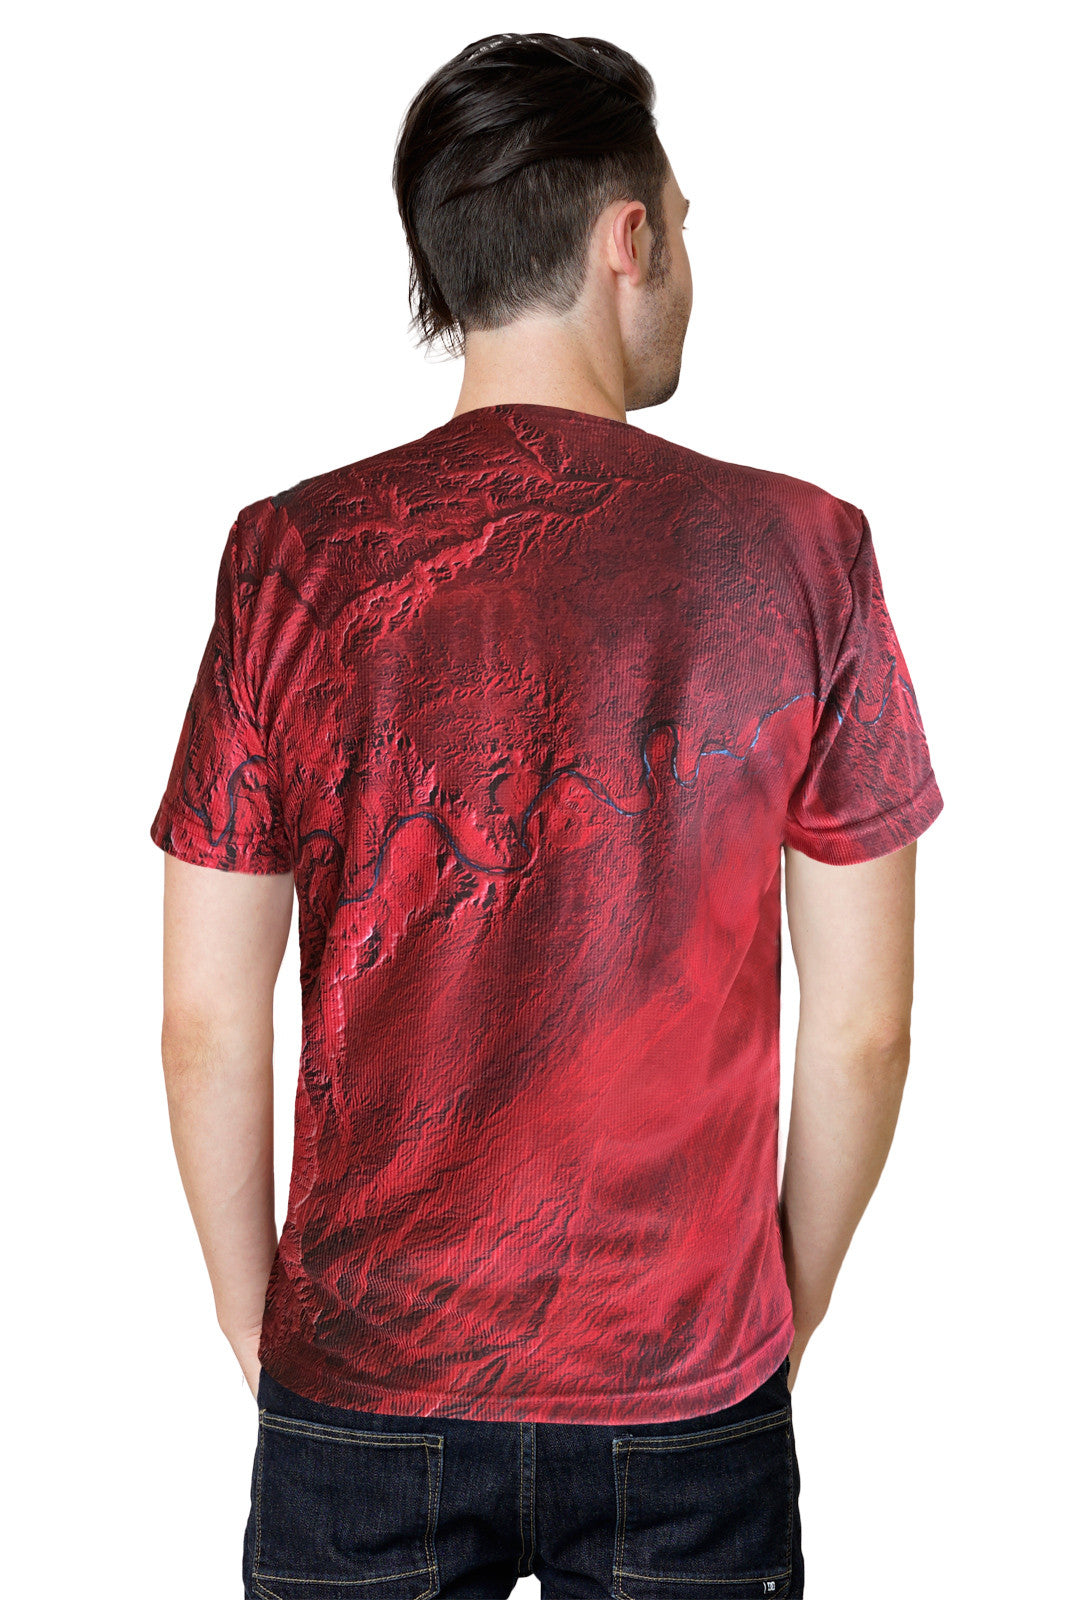 ns Short Sleeve T-shirt-Earthscapes Activewear Clothing-Desolation Canyon Utah-Back View